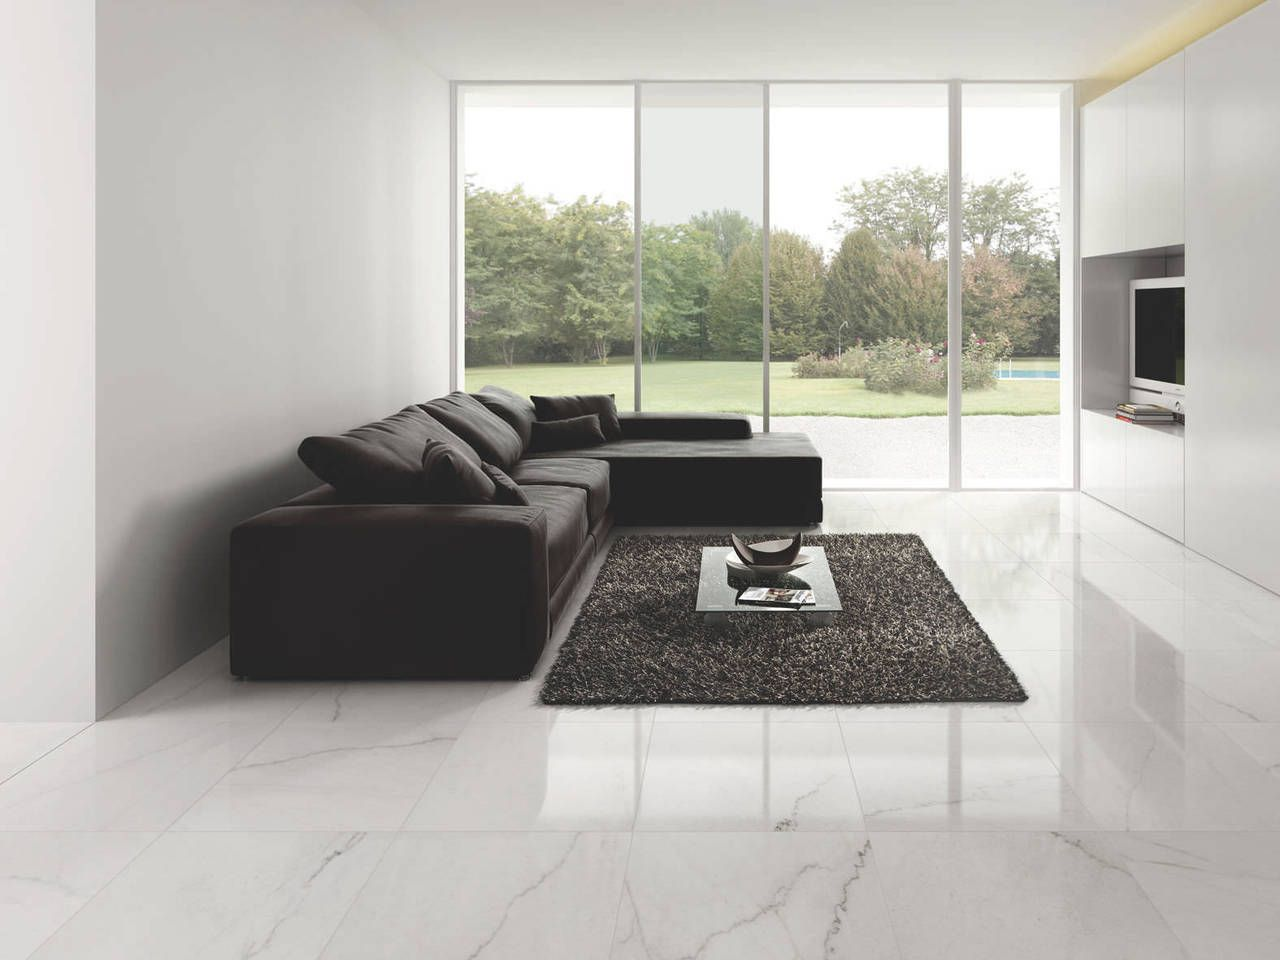 Carrara Porcelain Series 12 X 24 On Sale 3 98 Sq Ft Living Room Tiles Living Room Vinyl Flooring Living Room Vinyl